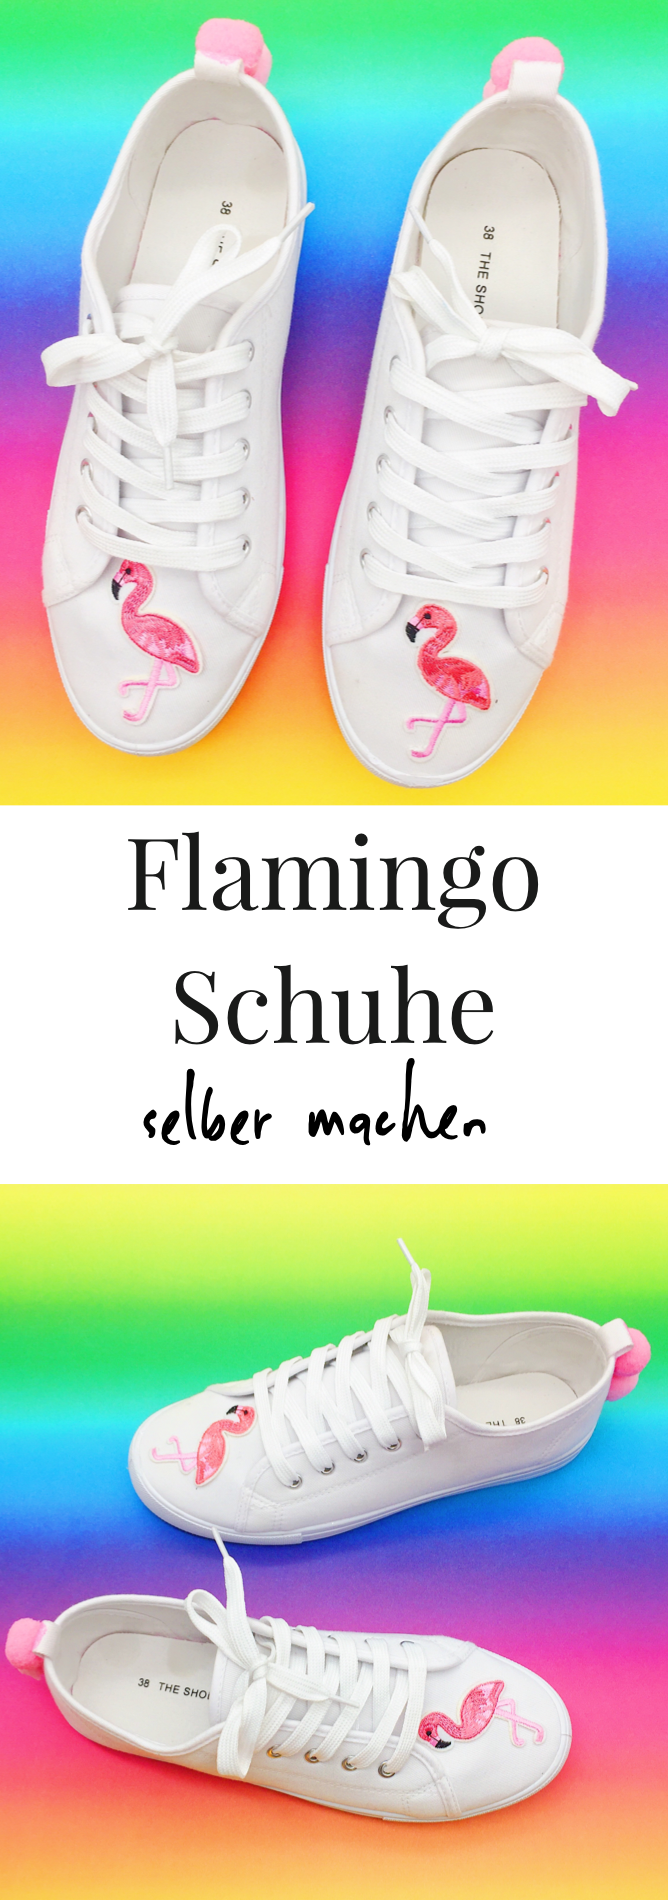 upcycling ideen f r kleidung schuhe mit flamingo patches und pompoms cute and sweet. Black Bedroom Furniture Sets. Home Design Ideas